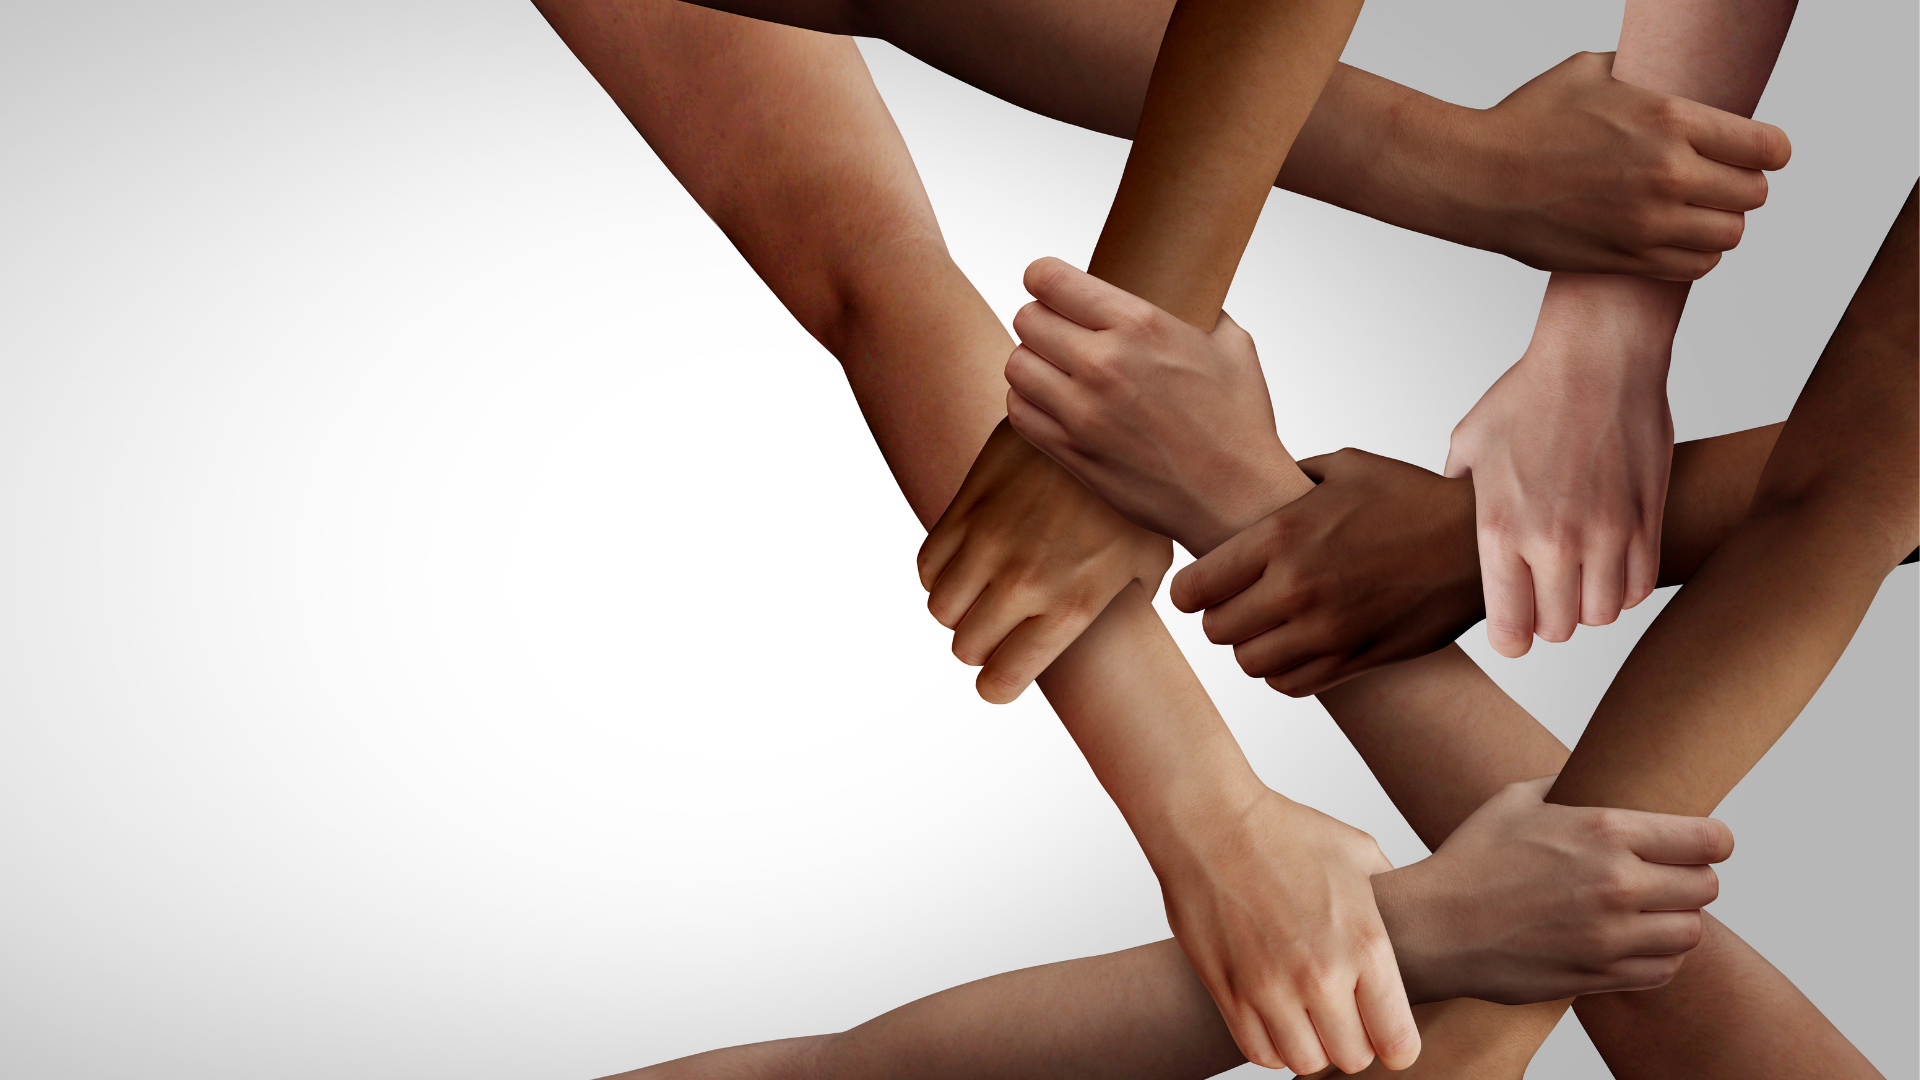 Multiple hands of different ethnicities intersecting and holding each other